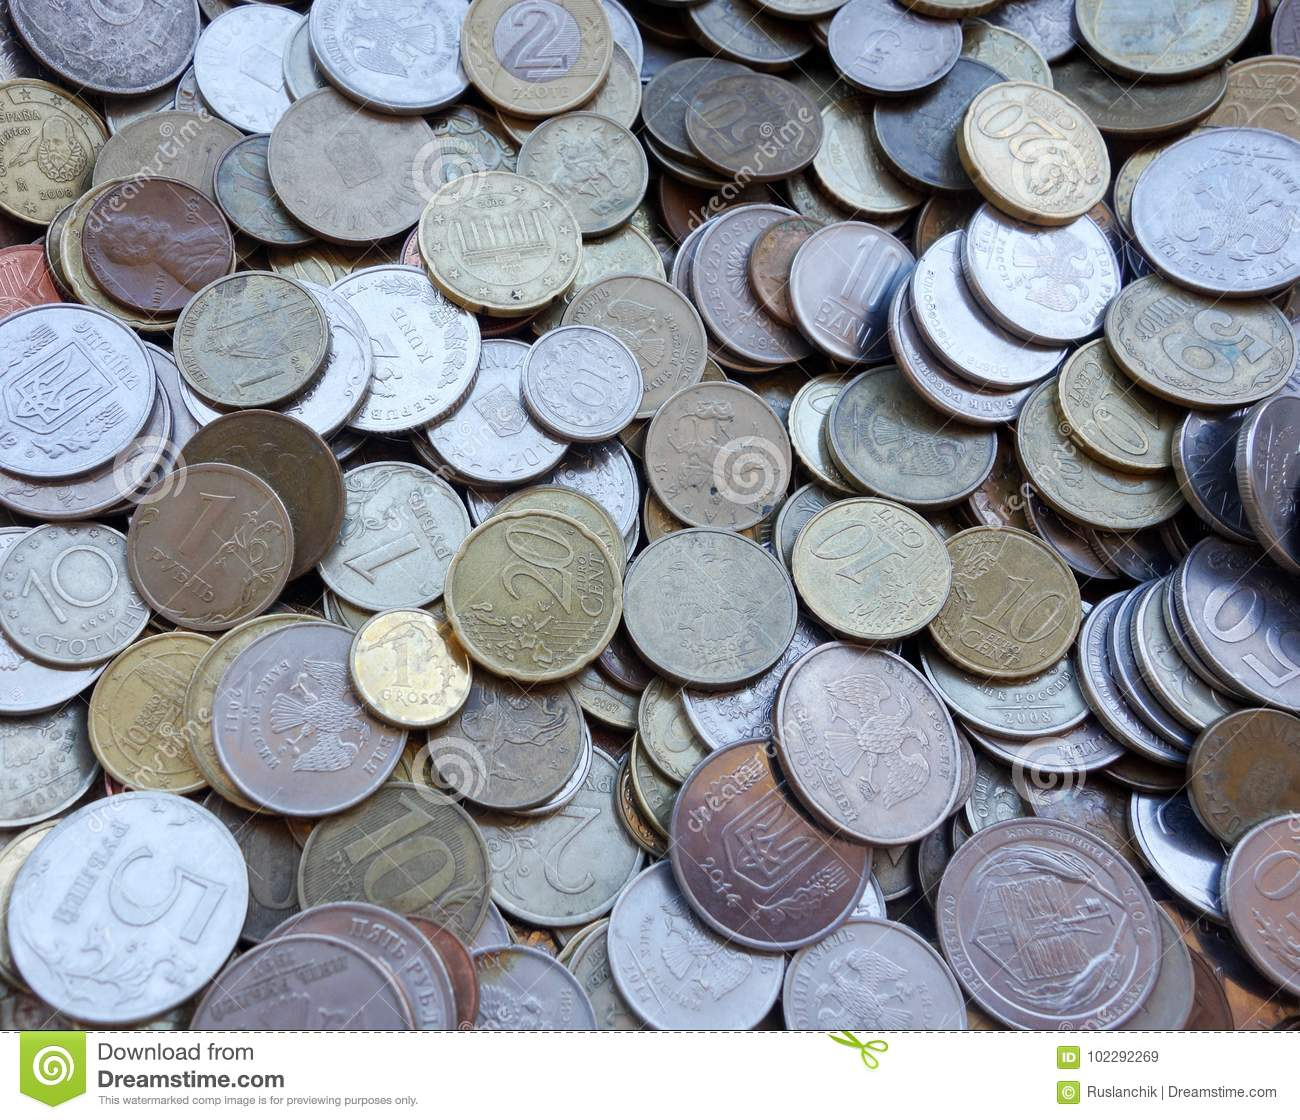 world coins catalog free download